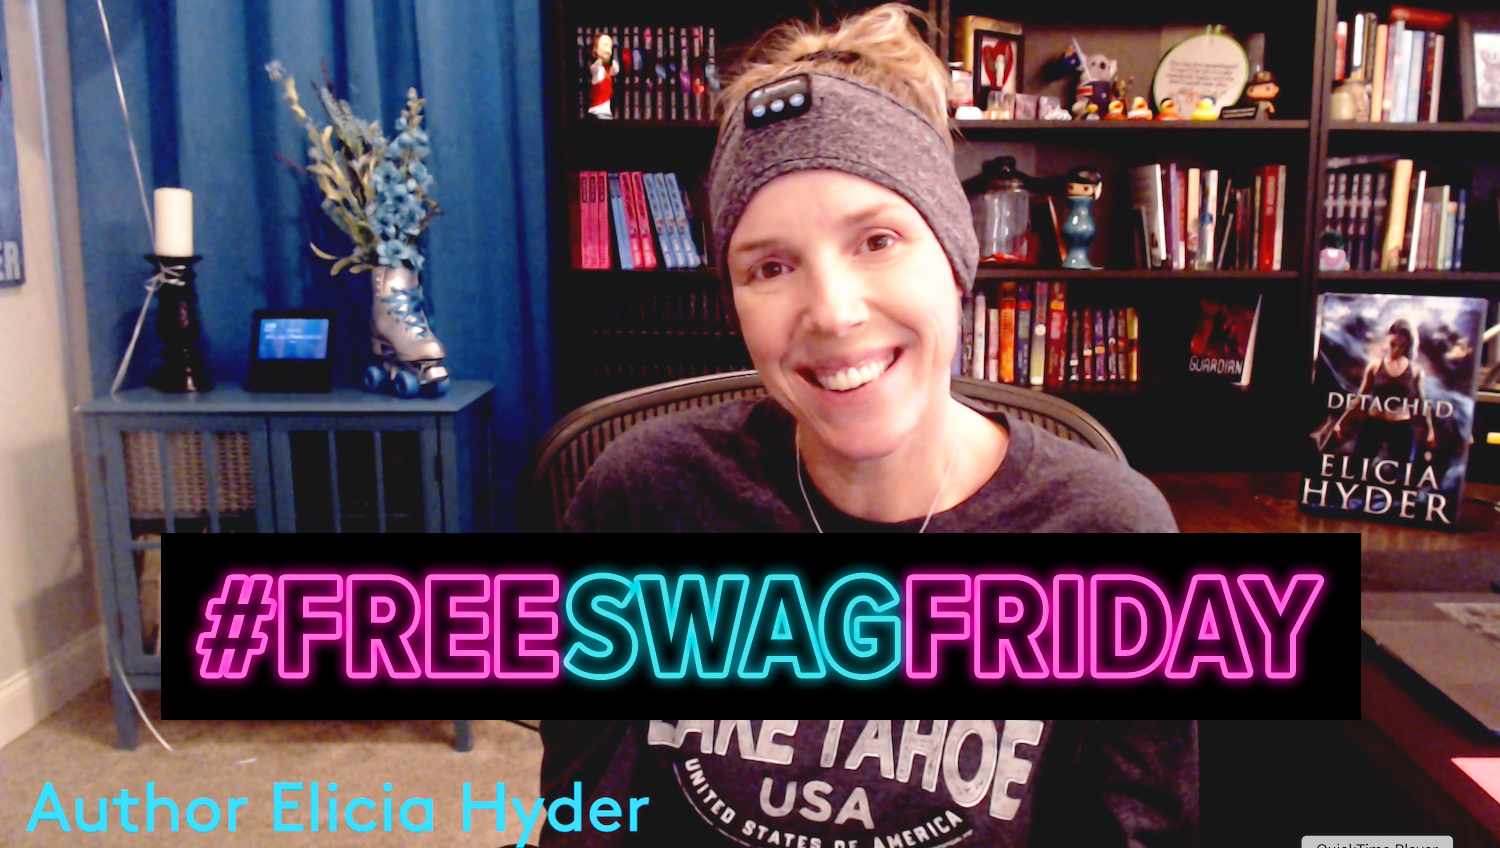 FREESWAGFRIDAY – For audio lovers!